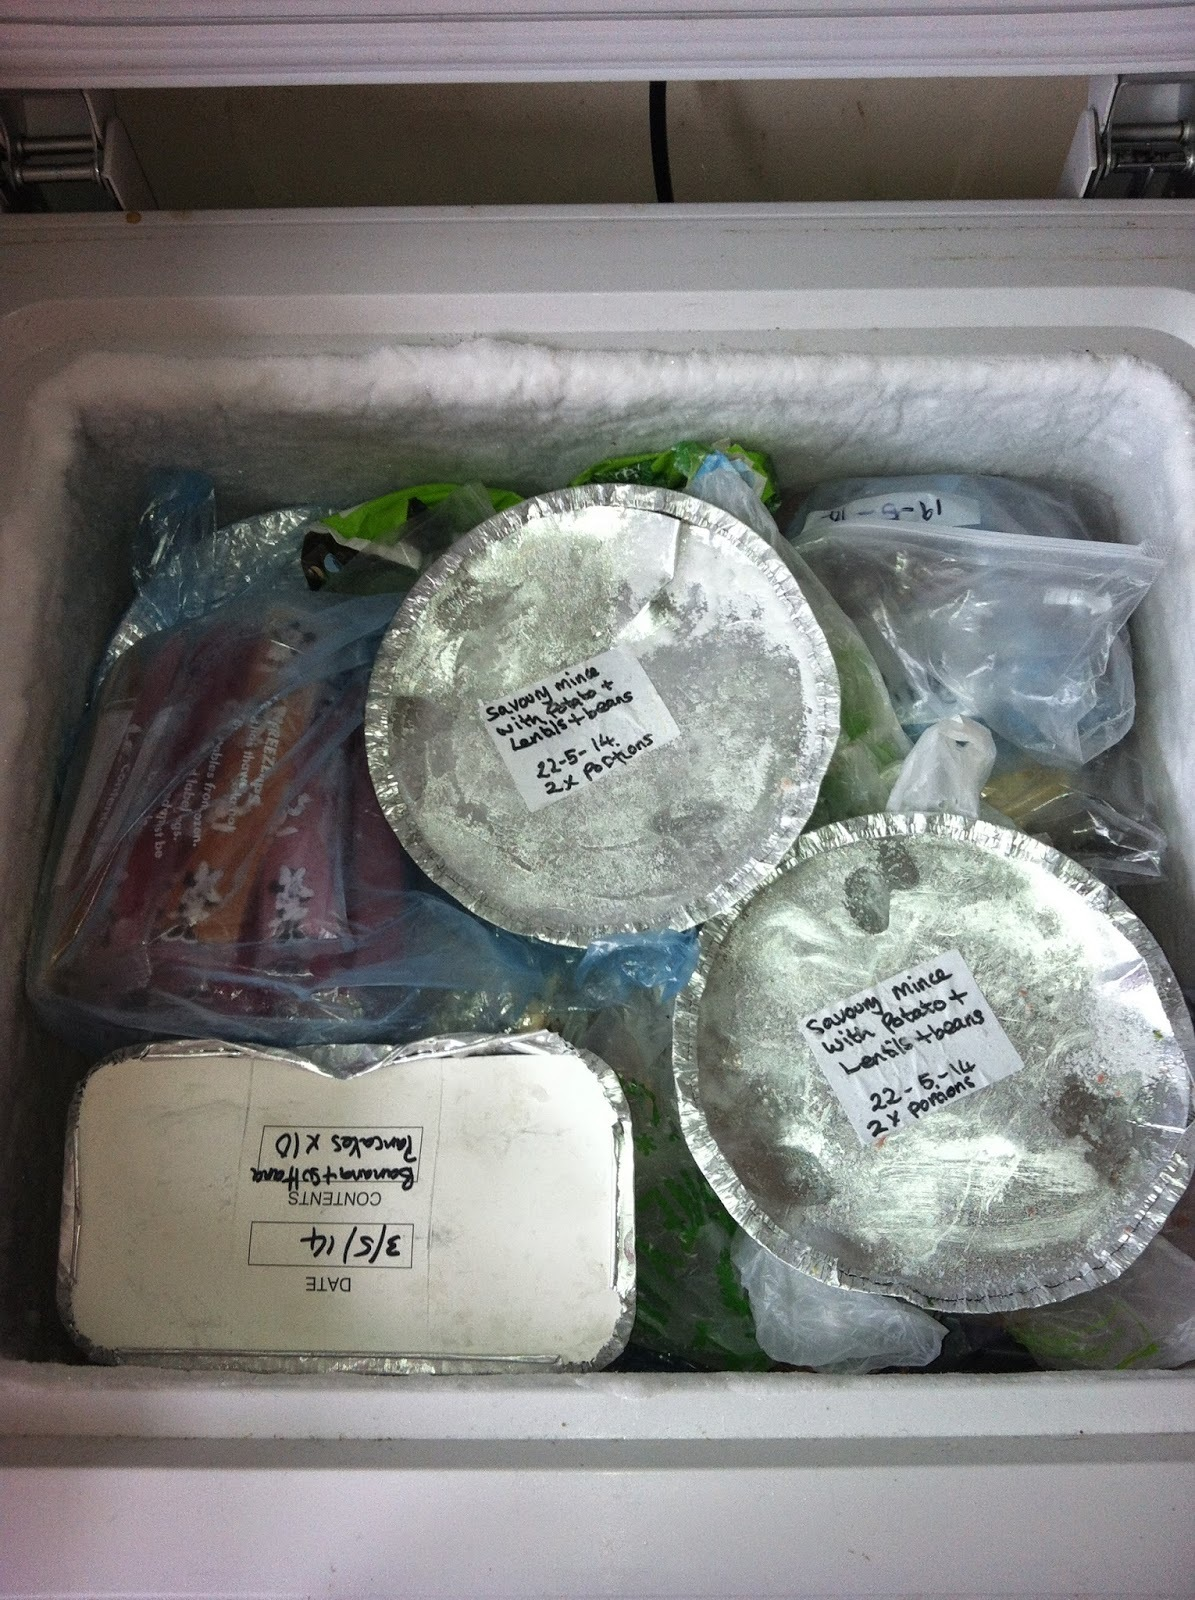 The contents of my freezer!